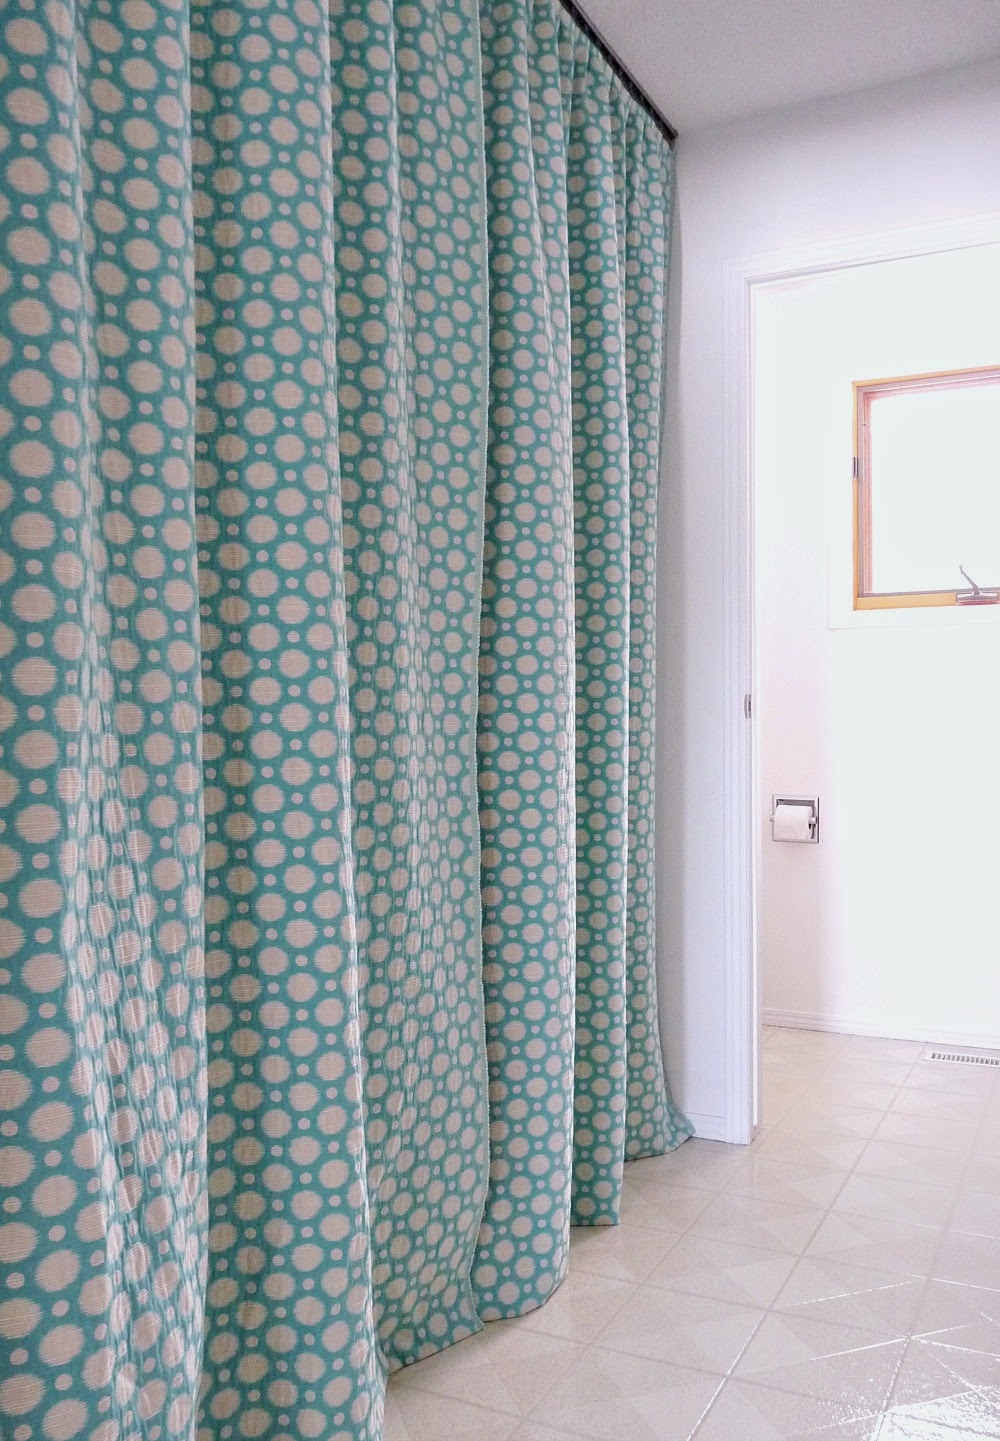 Aqua Polka Dot Curtains